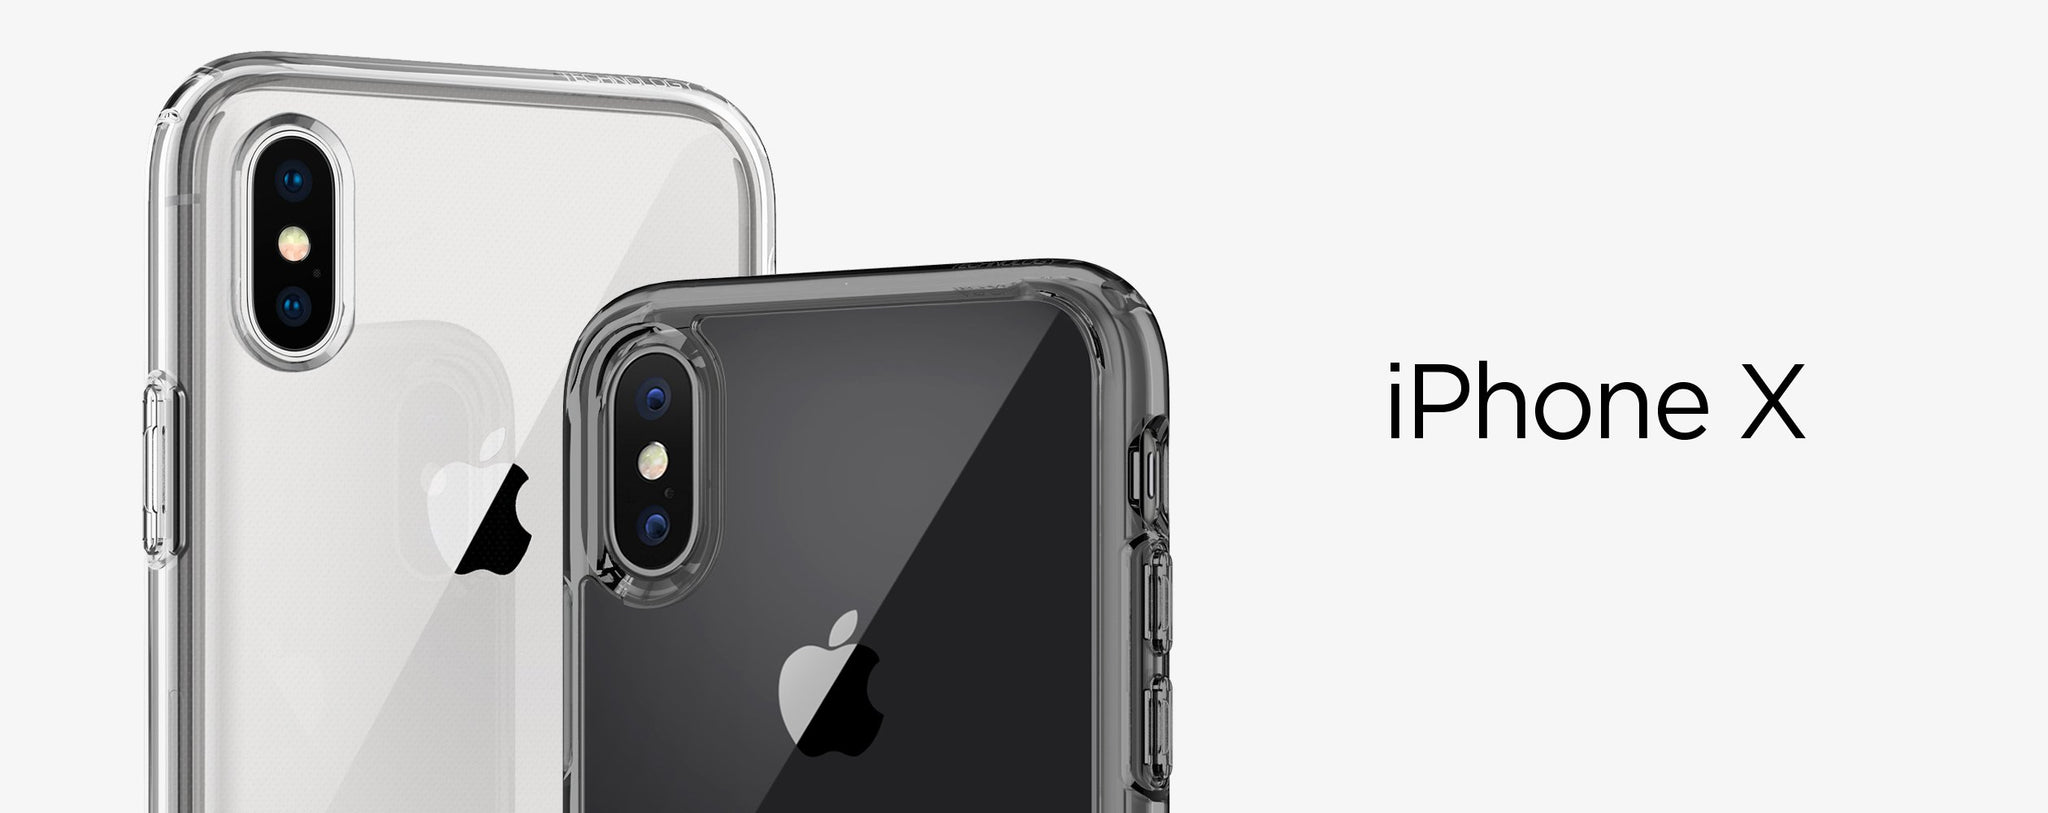 iphone x mobile cases, covers and accessories buy online in pakistanTop Selling Iphone X Cases Iphone X Cool Covers Iphone X Cases And Accessories Custom Iphone Cases The Phone Case Shop Chanel #8